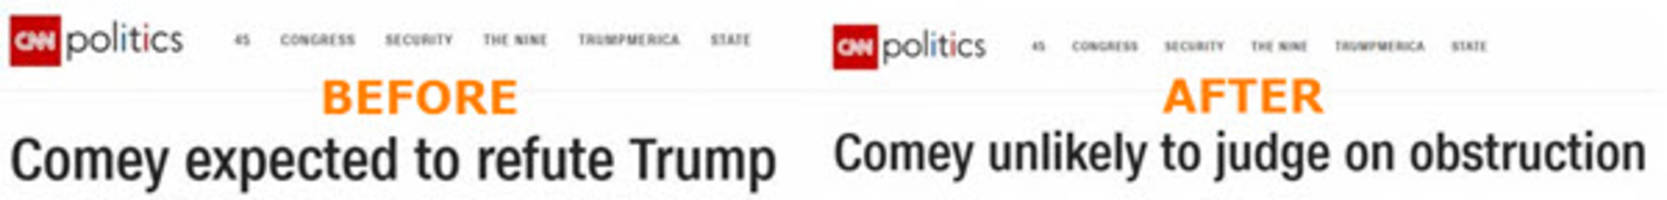 cnn corrects 'fake news' story on comey-trump